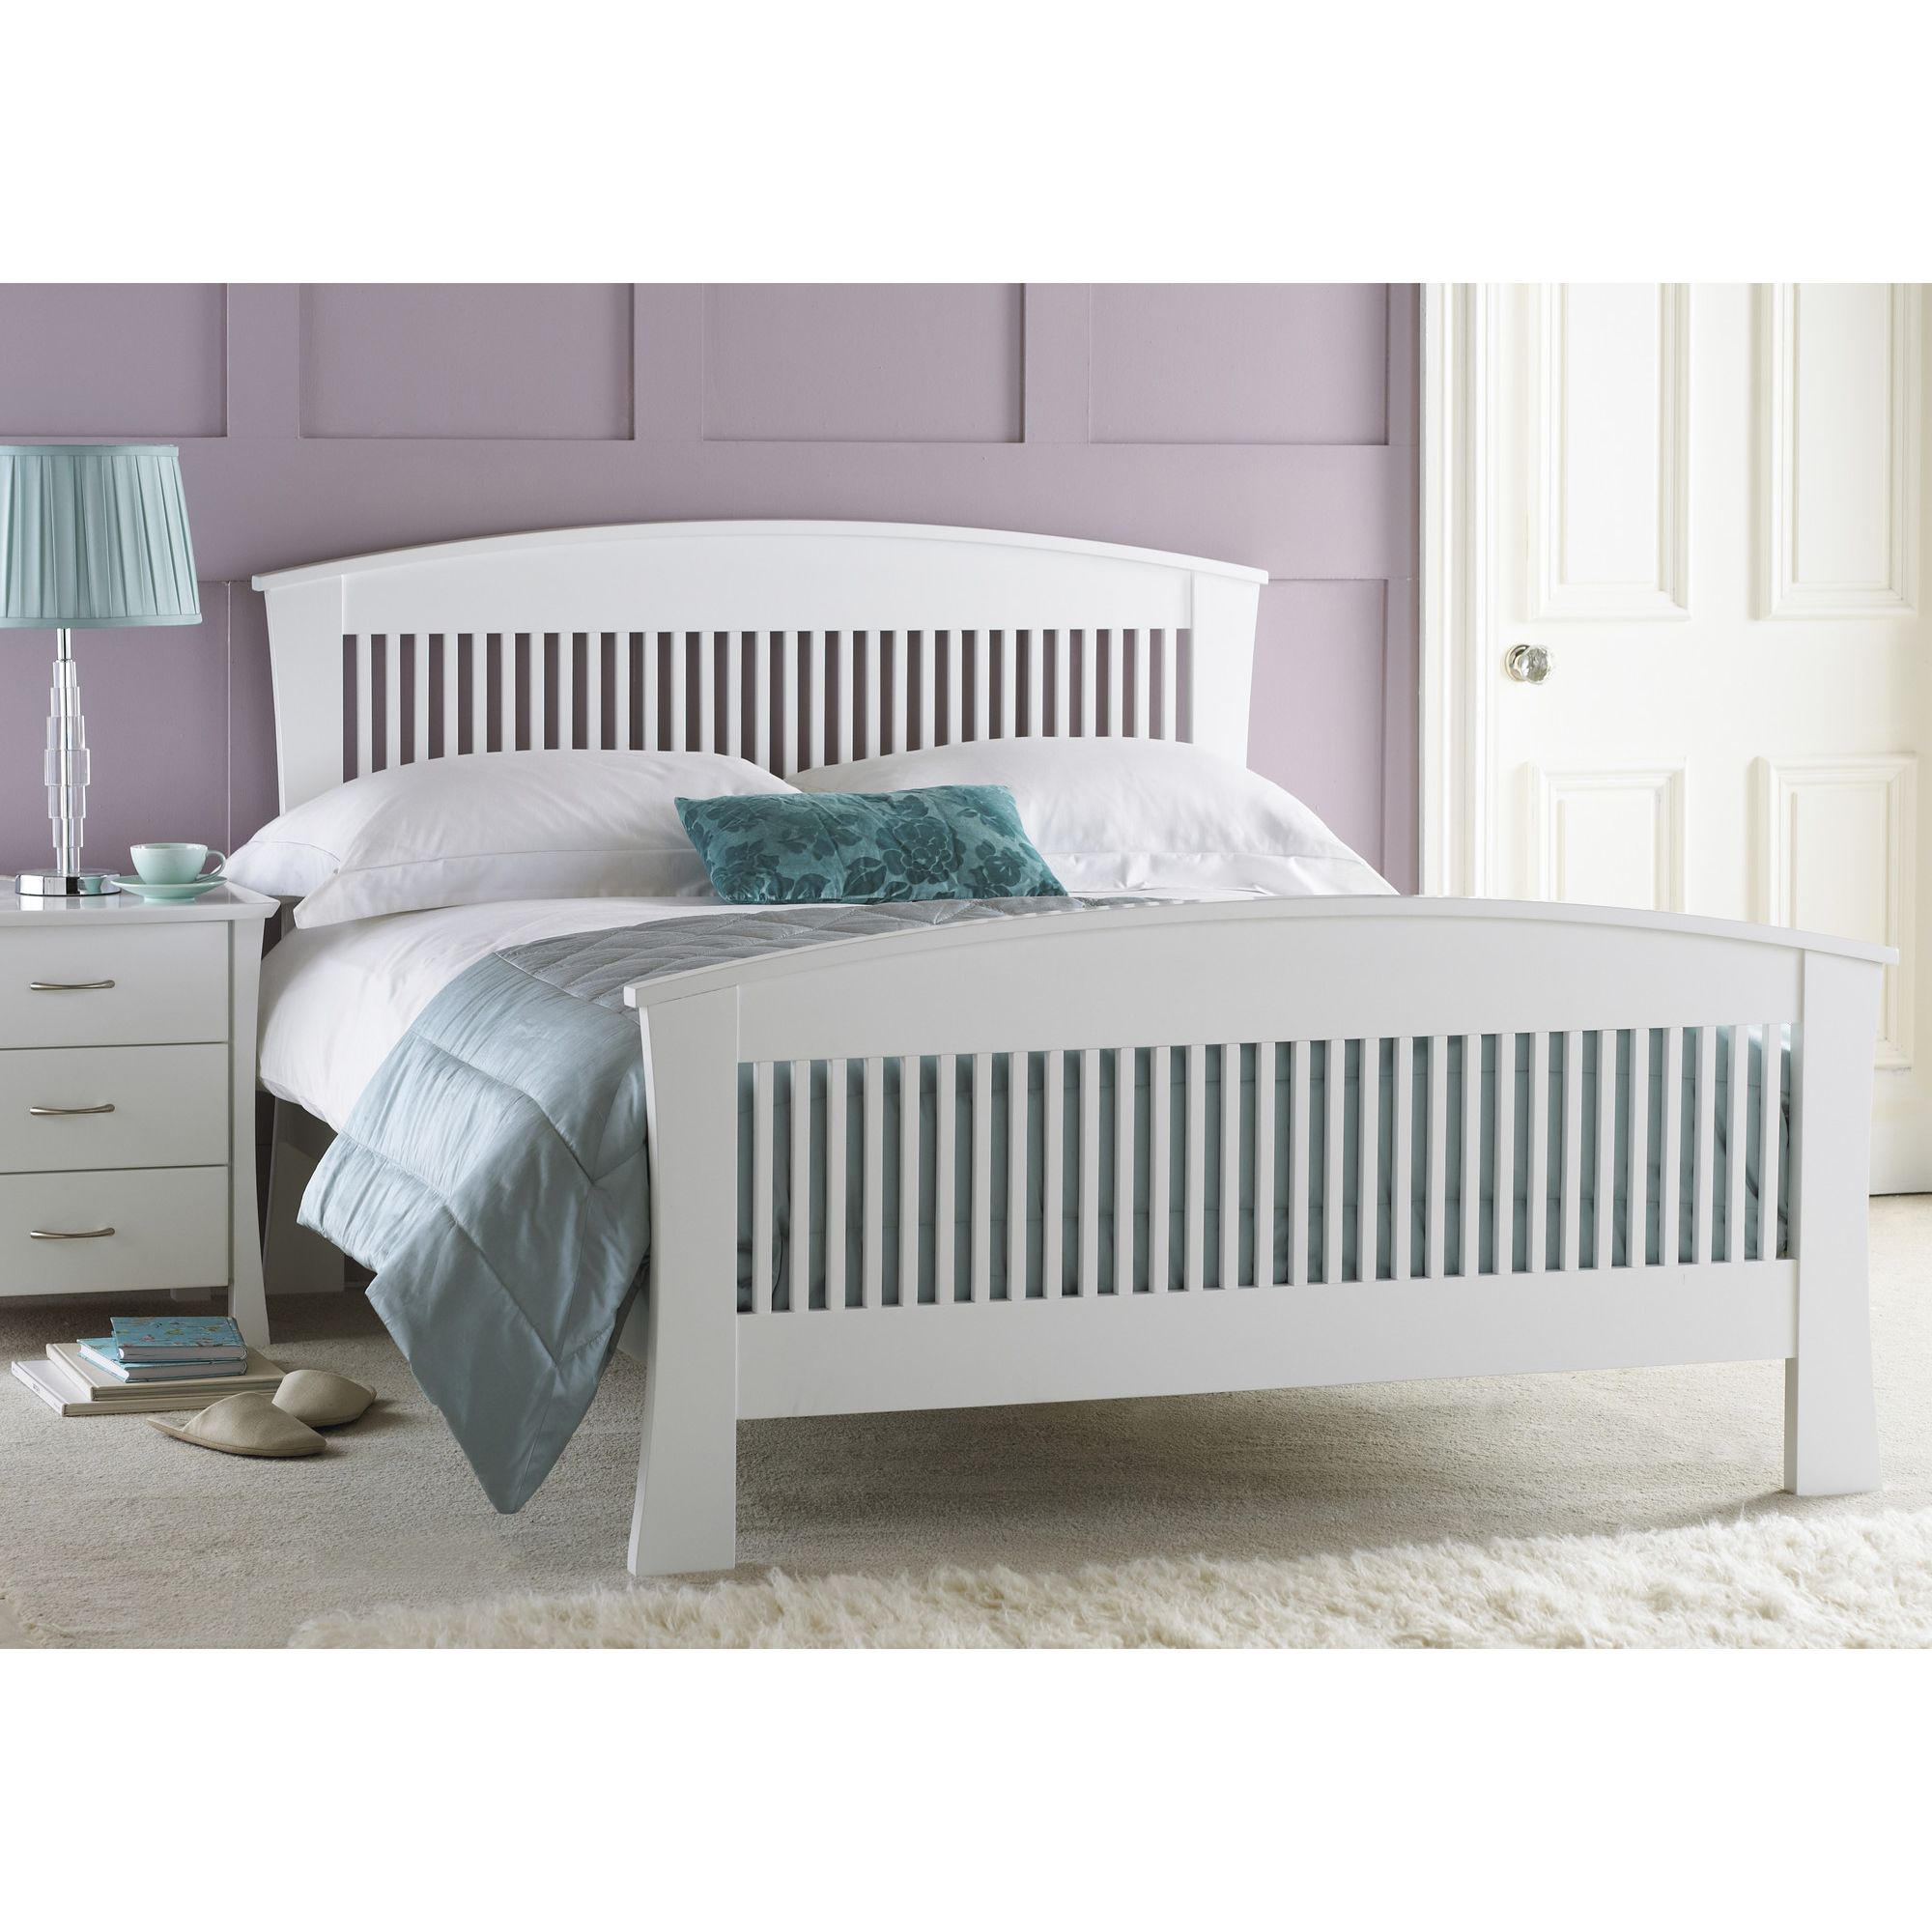 Hyder Hampton Oak Bed - King at Tesco Direct